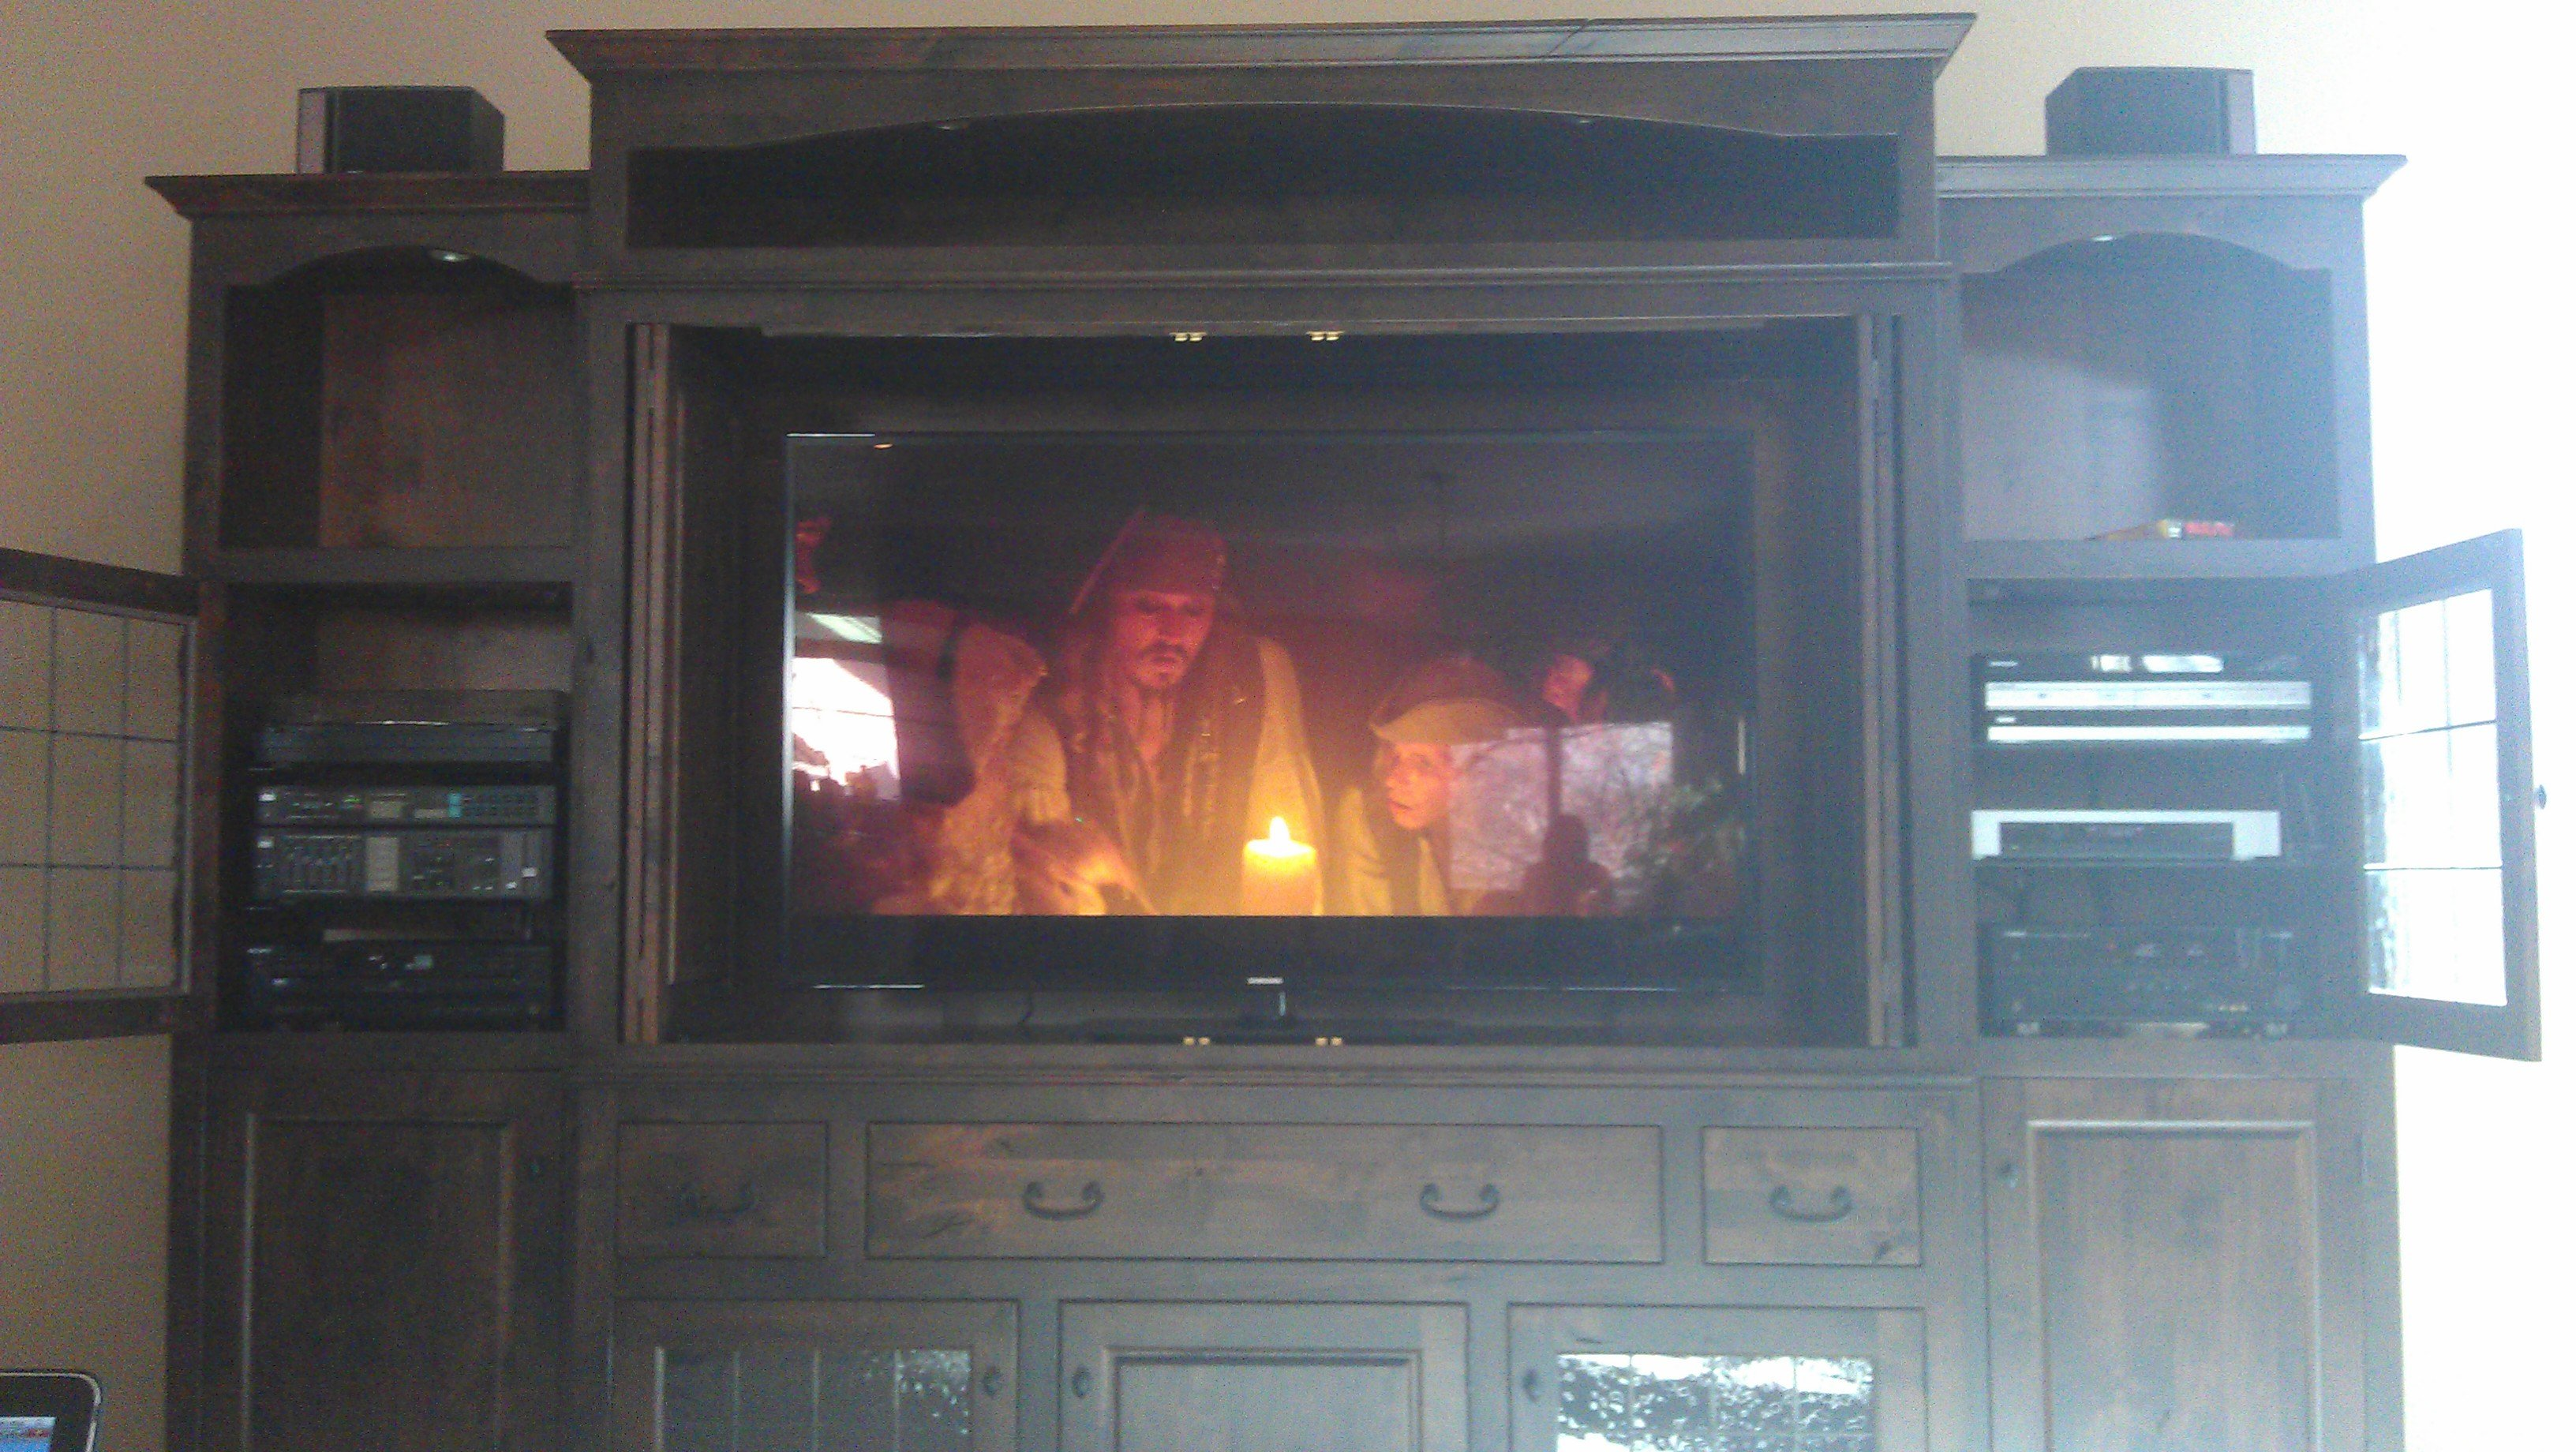 Home theatre system set up by Live Wire Electrical in Littleton, CO